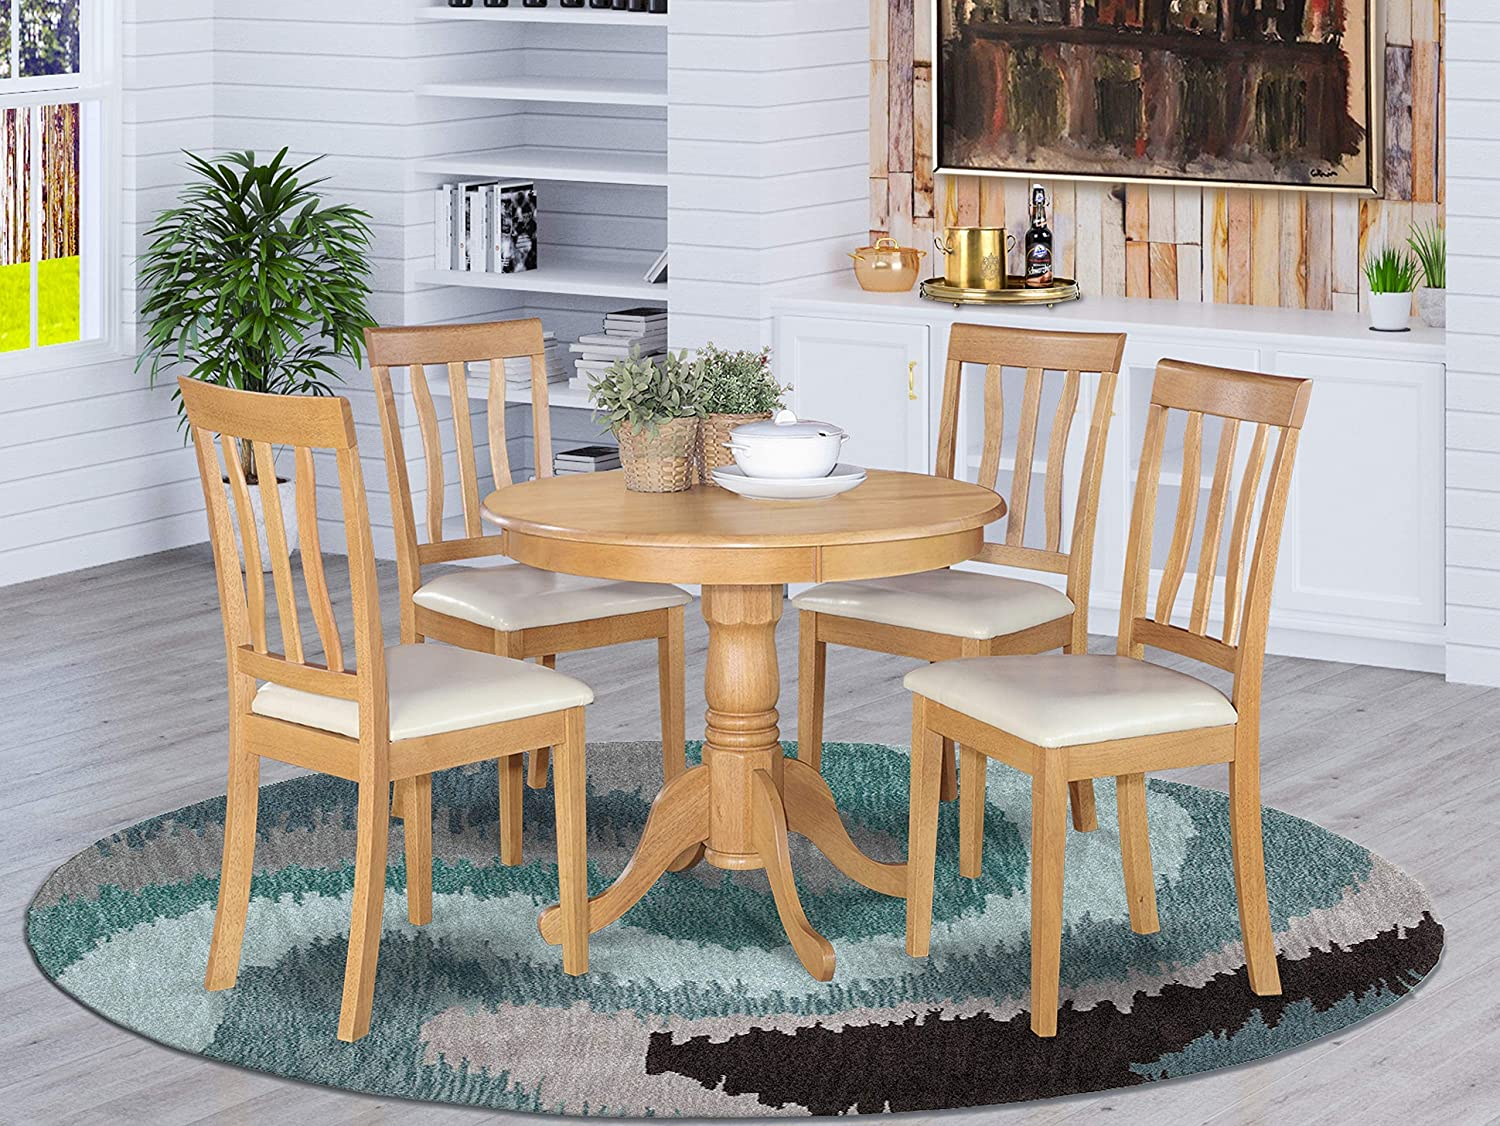 Amazon Com East West Furniture Dining Room Set 4 Great Wooden Chairs A Wonderful Pedestal Dining Table Faux Leather Seat And Oak Finnish Round Wooden Table Table Chair Sets